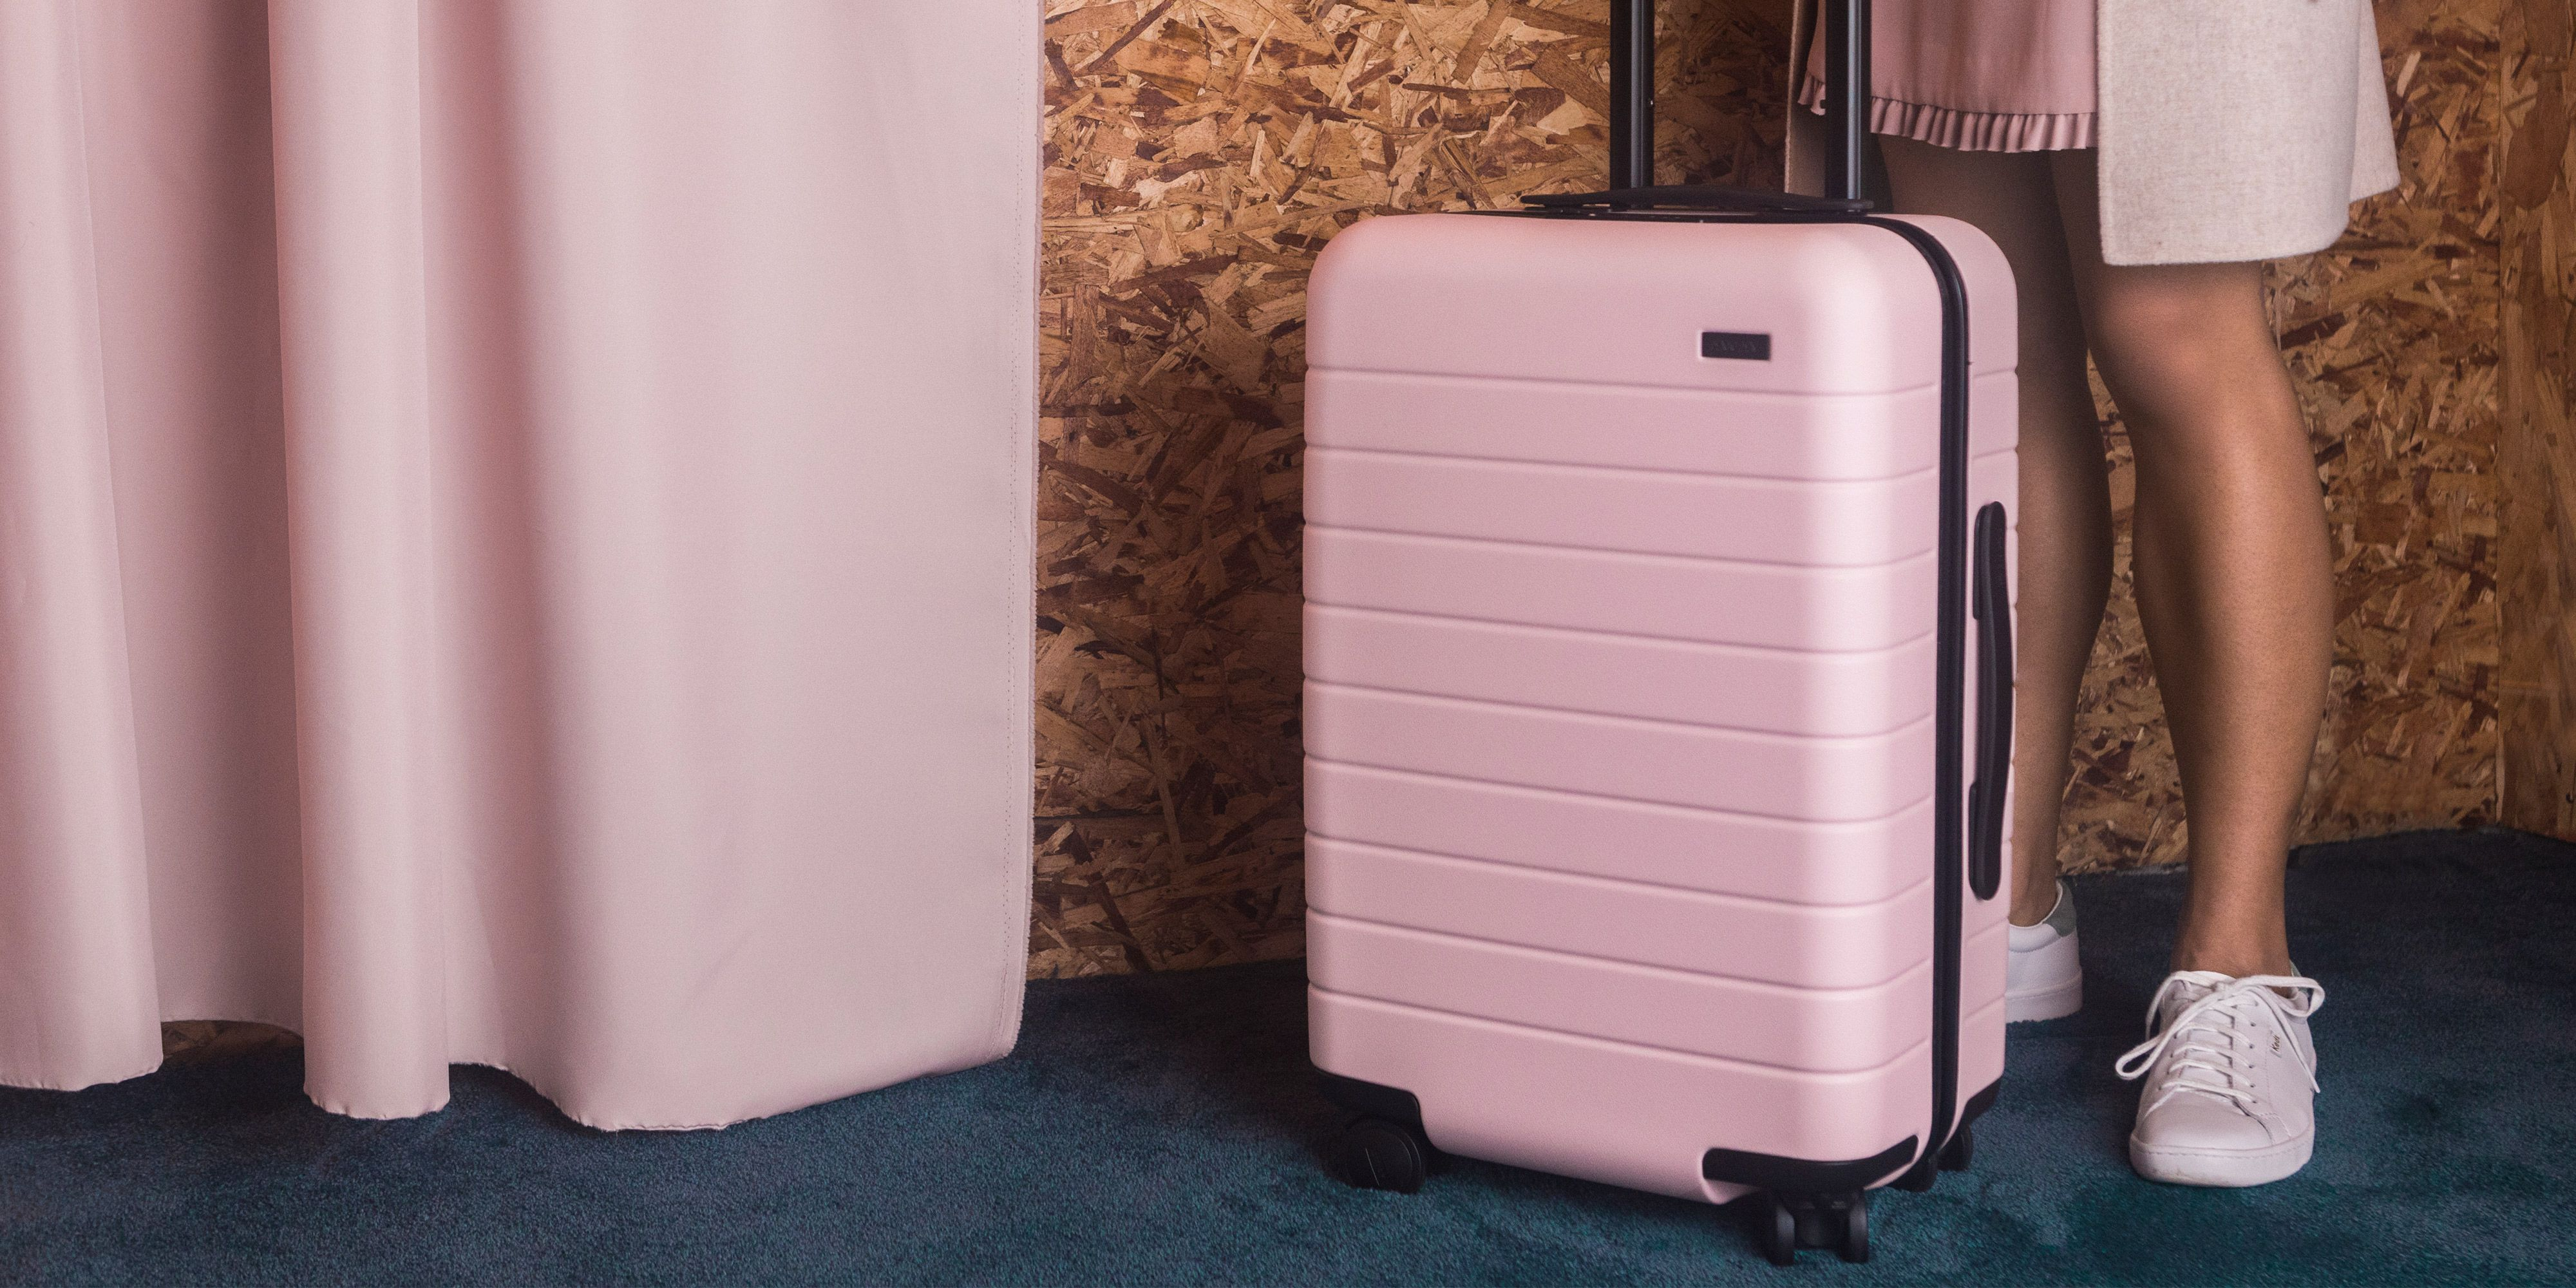 9b27a9abca Millennial Pink Away Luggage - Where to Buy Pink Carry-On